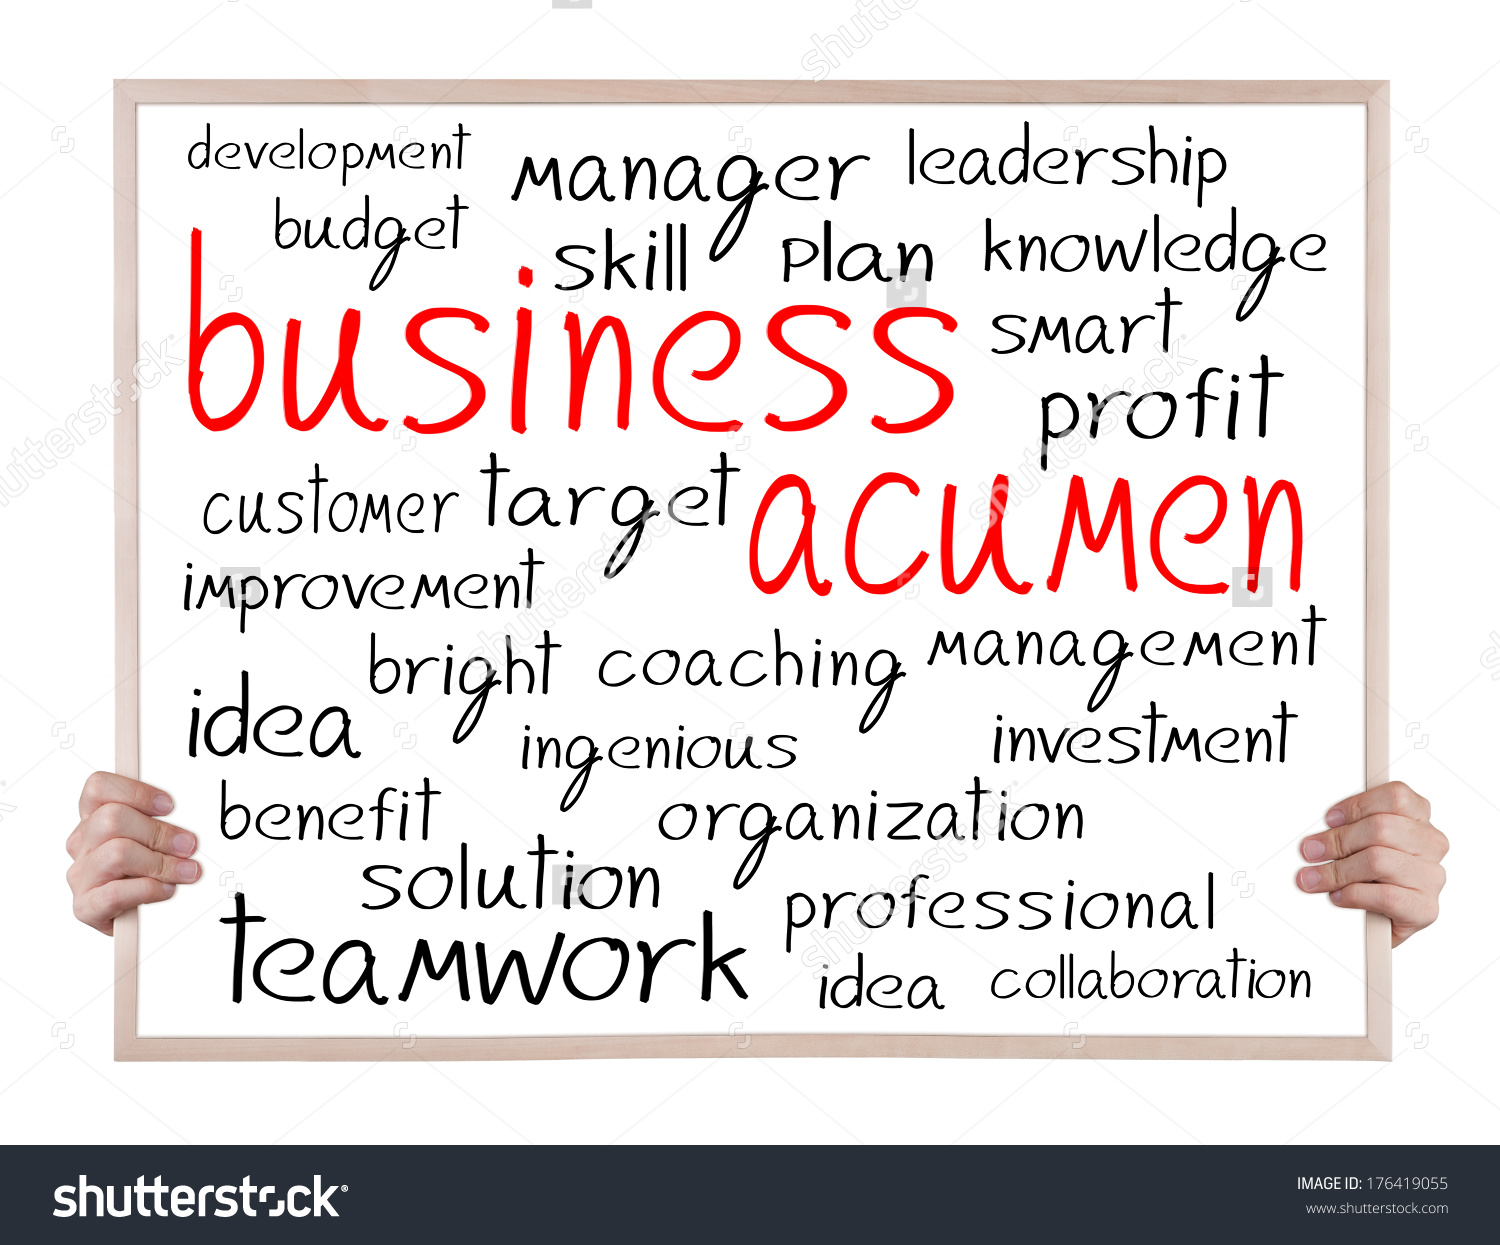 Business Acumen Other Related Words Handwritten Stock Photo.